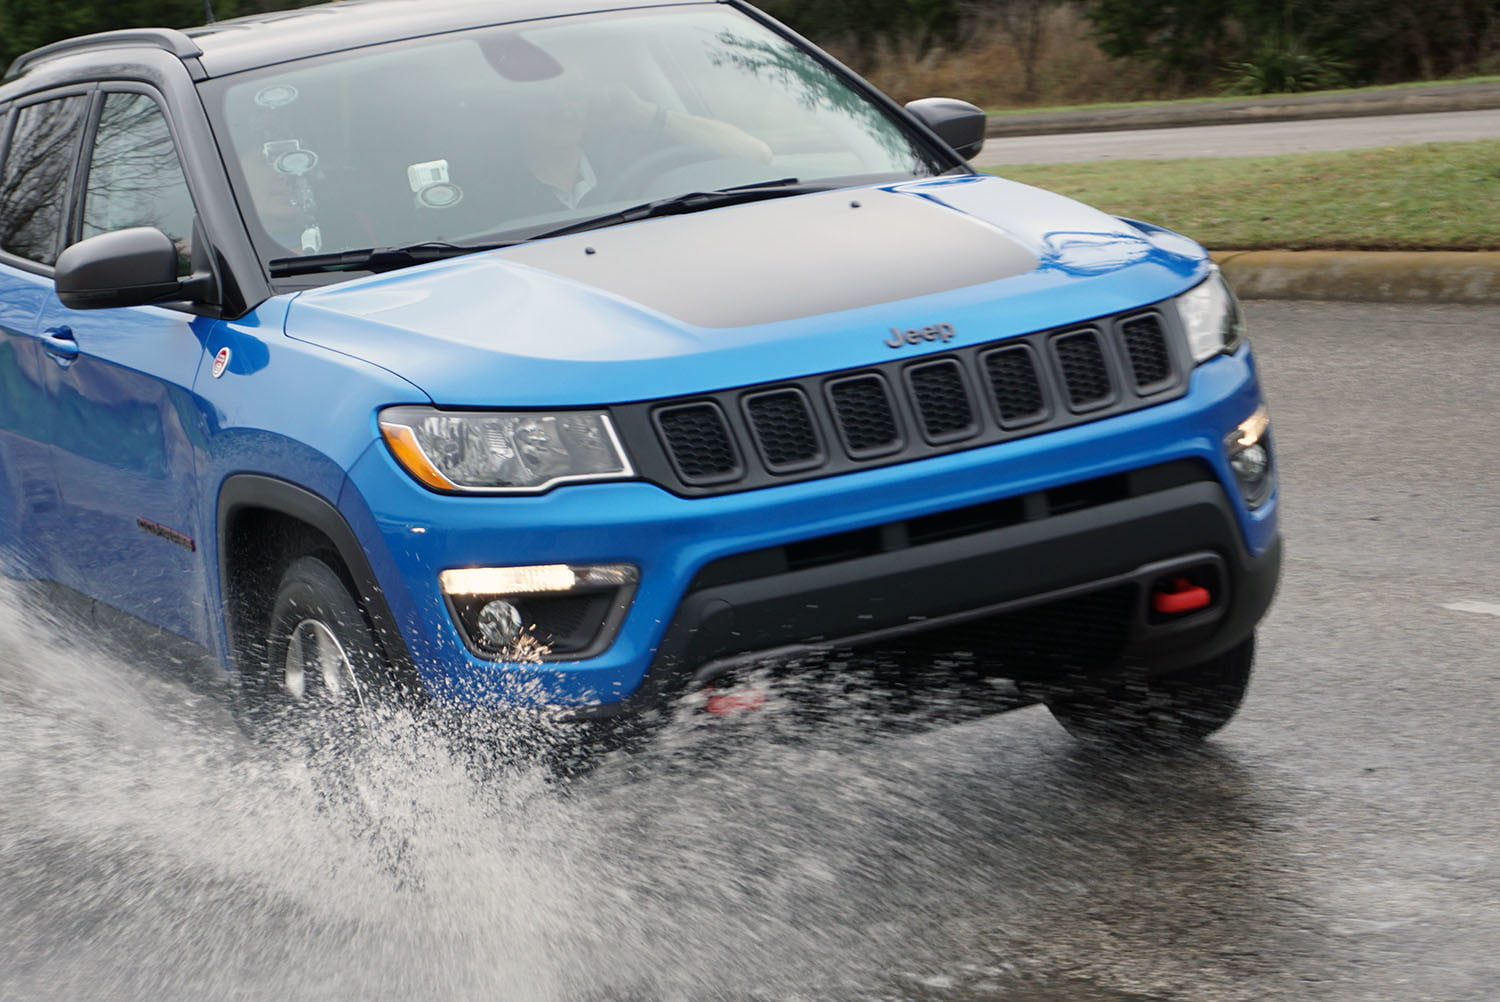 2017 jeep compass review best compact suv on market digital trends. Black Bedroom Furniture Sets. Home Design Ideas